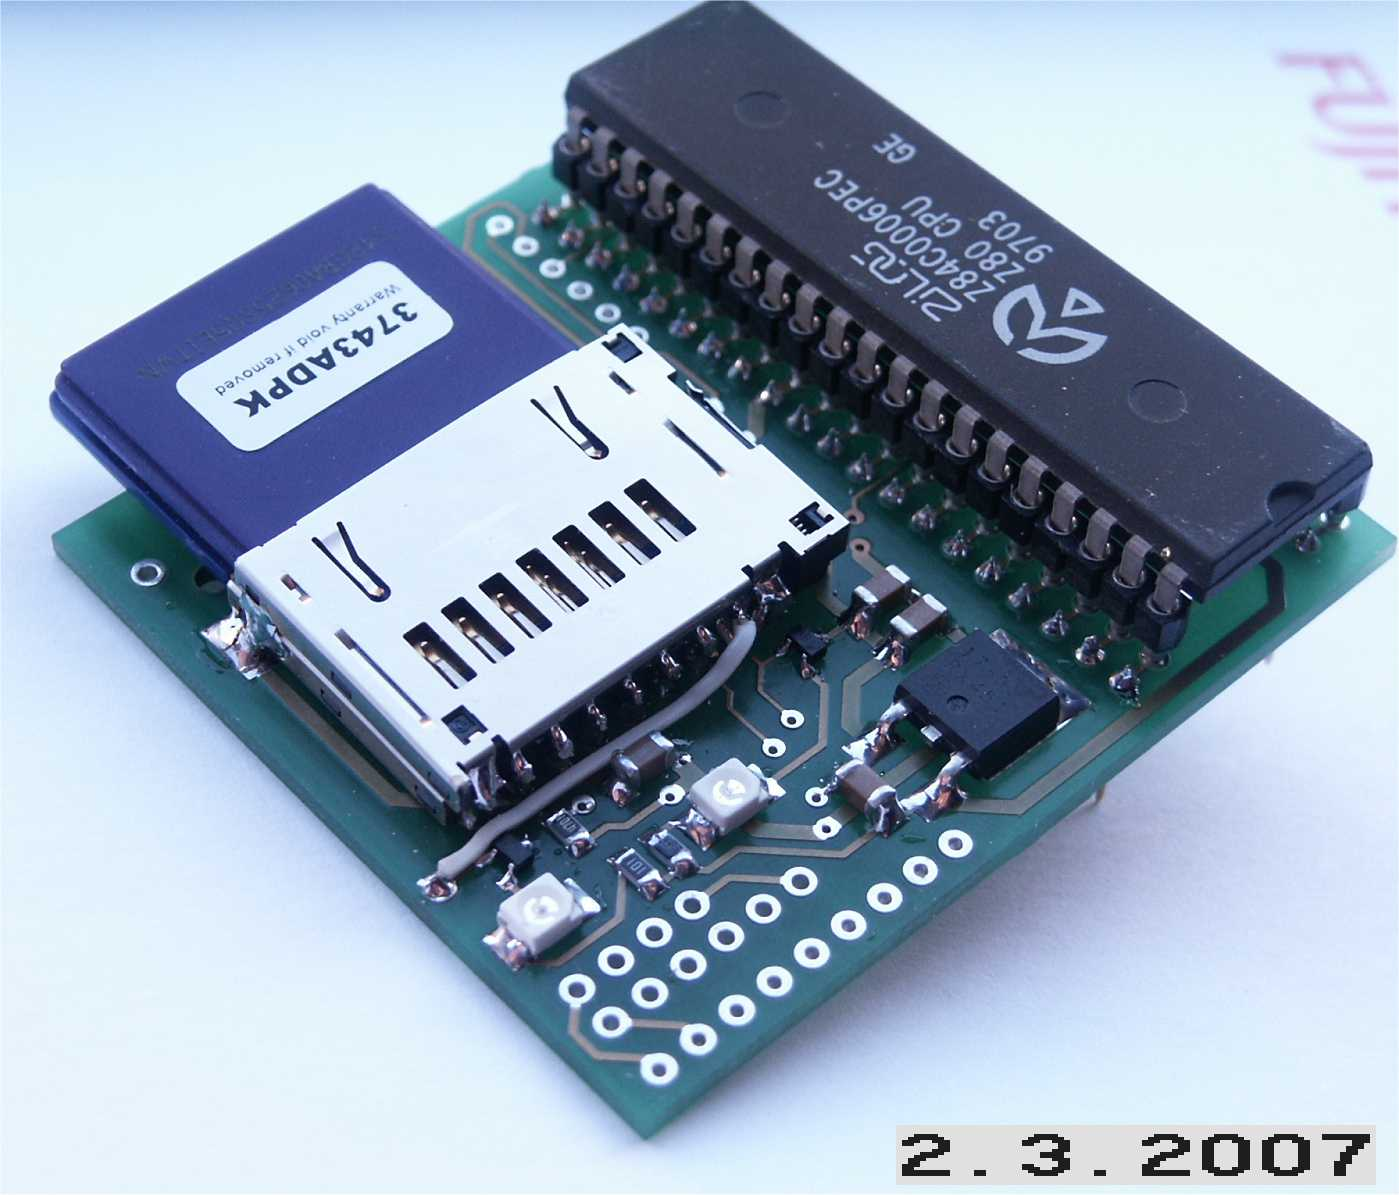 The Zxmmc Interface Basic Digital Computing Circuitry Used In Sinclair Spectrum This Can Be Plugged Into Z80 Socket Of A 128k 2a 3 Zx It Works On Any Including 16 48k Machines But There Are Physical